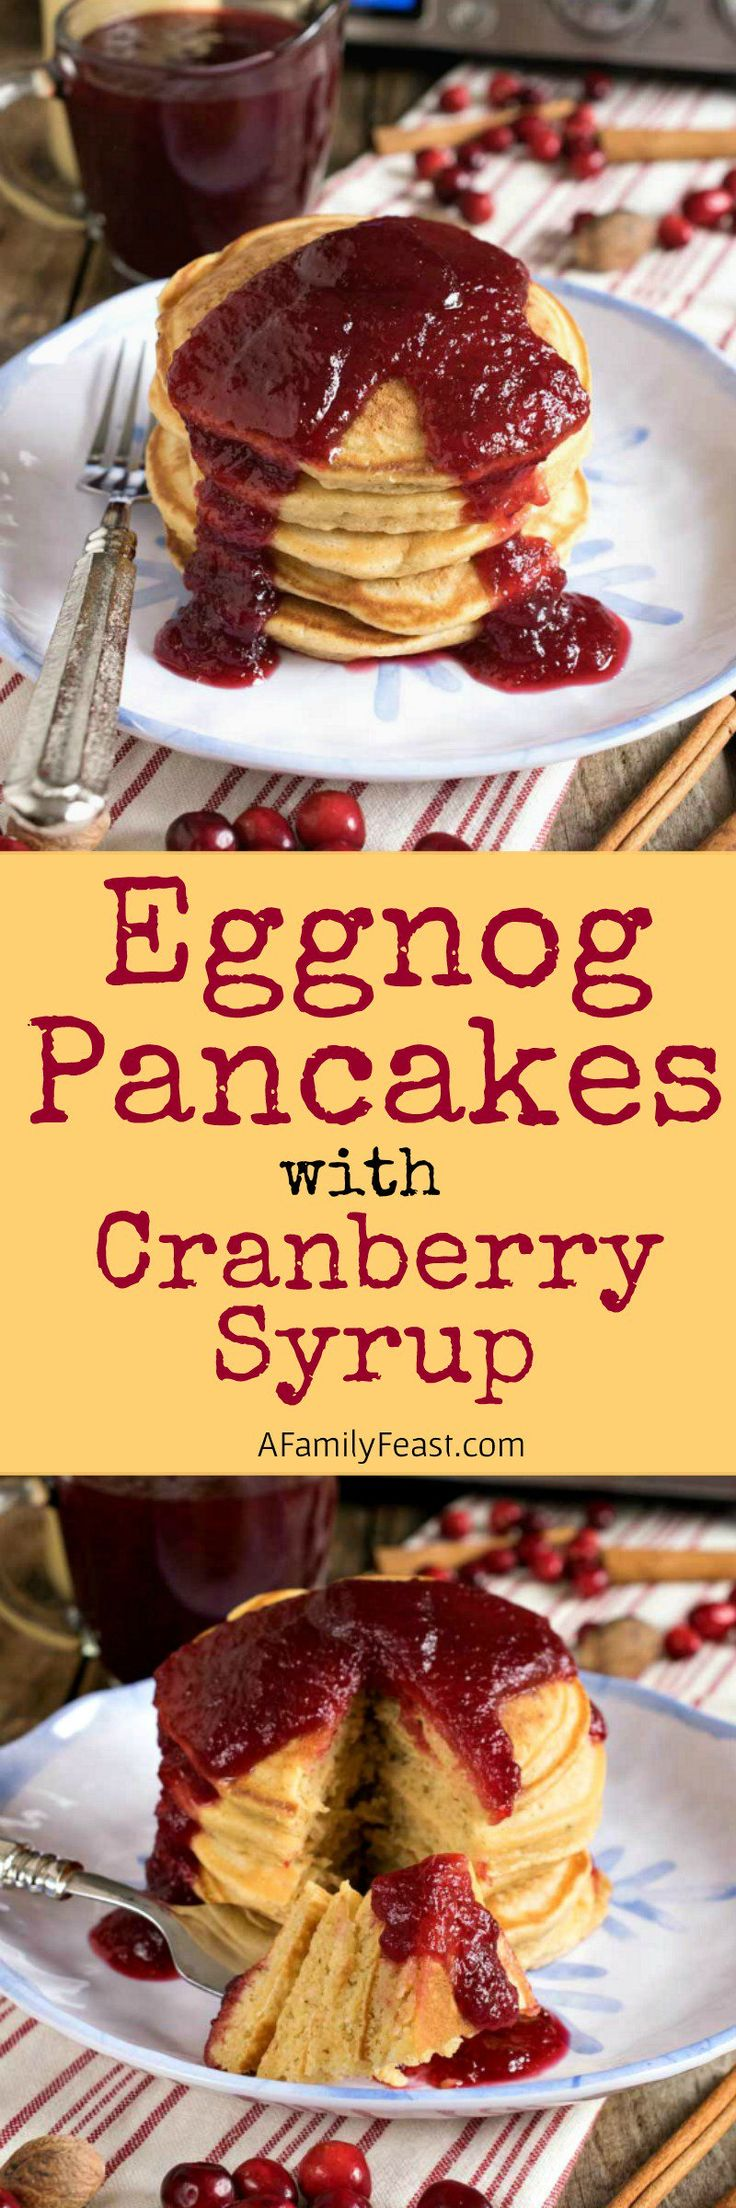 Eggnog Pancakes with Fresh Cranberry Syrup is a wonderful holiday breakfast the entire family will love!